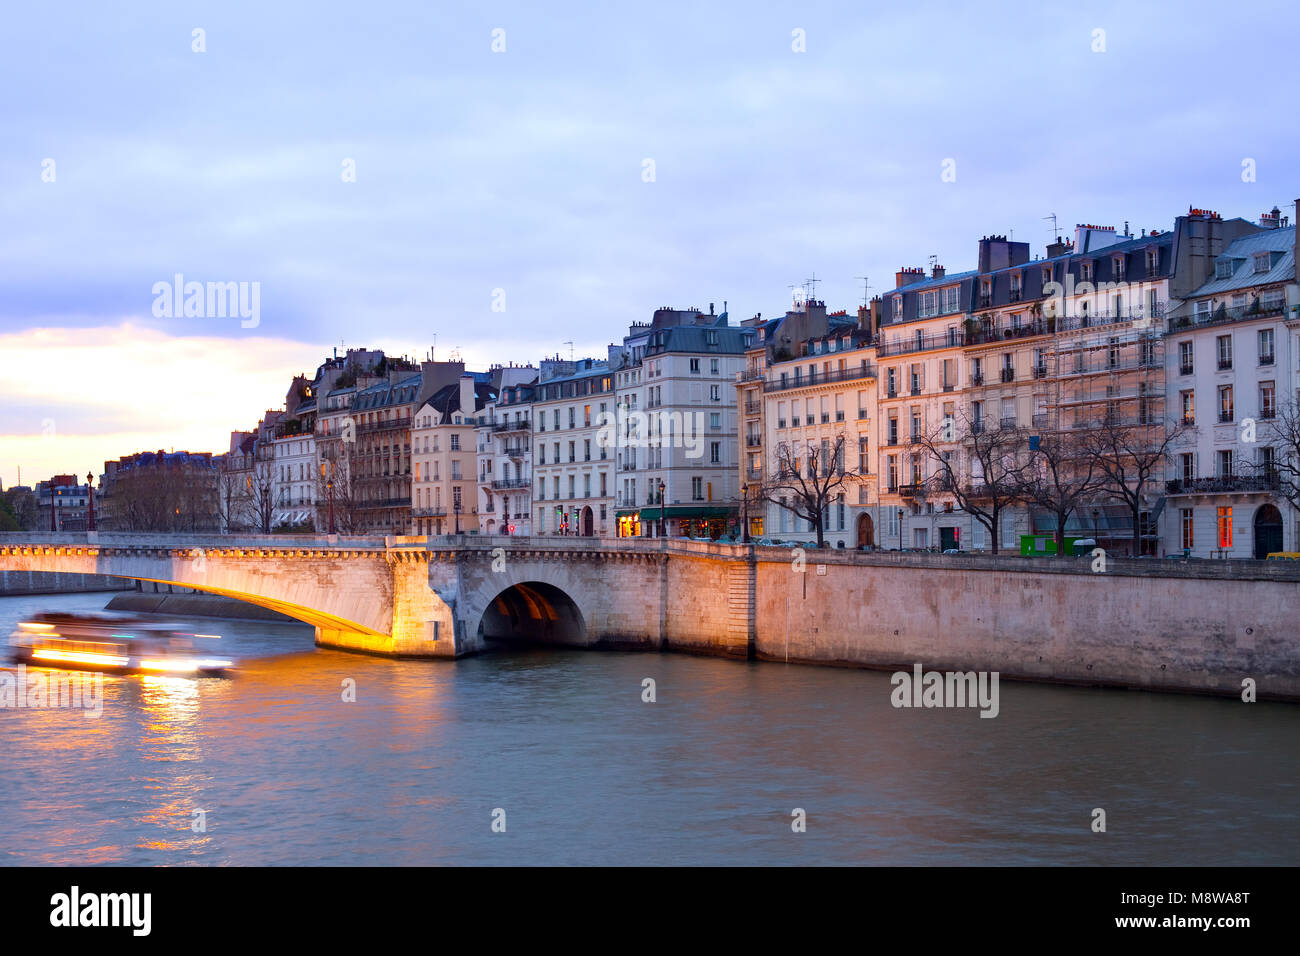 Boat on the Seine River passing by Pont de la Tournelle bridge in front of Ile Saint Louis, Paris, France - Stock Image